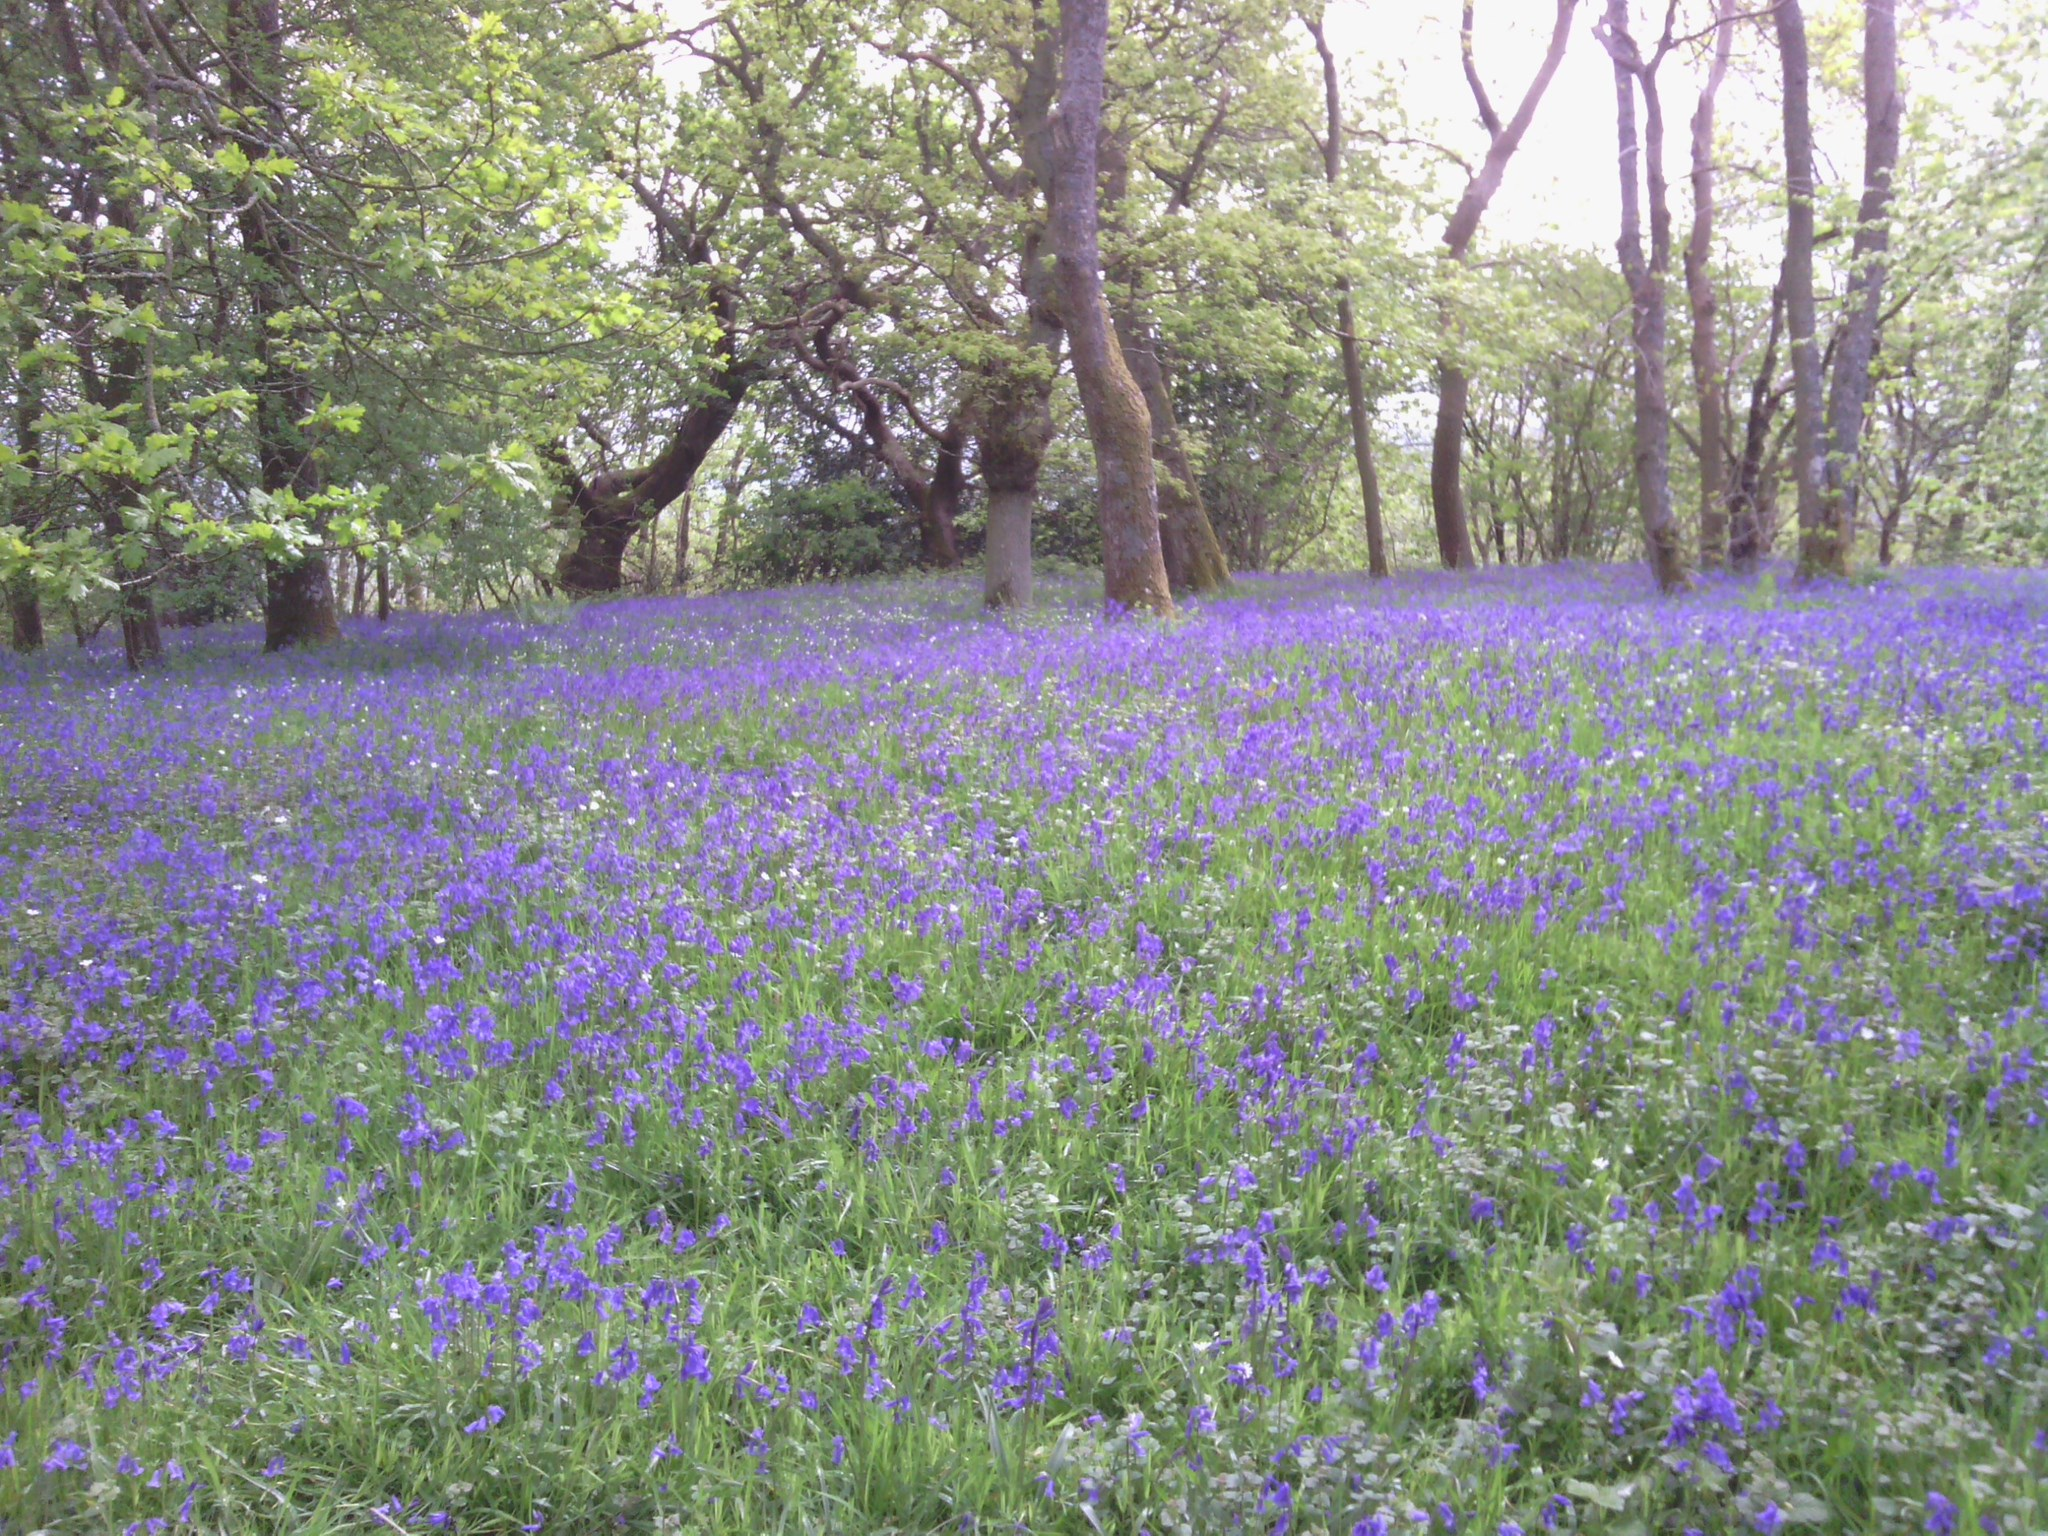 A walk through the Bluebells